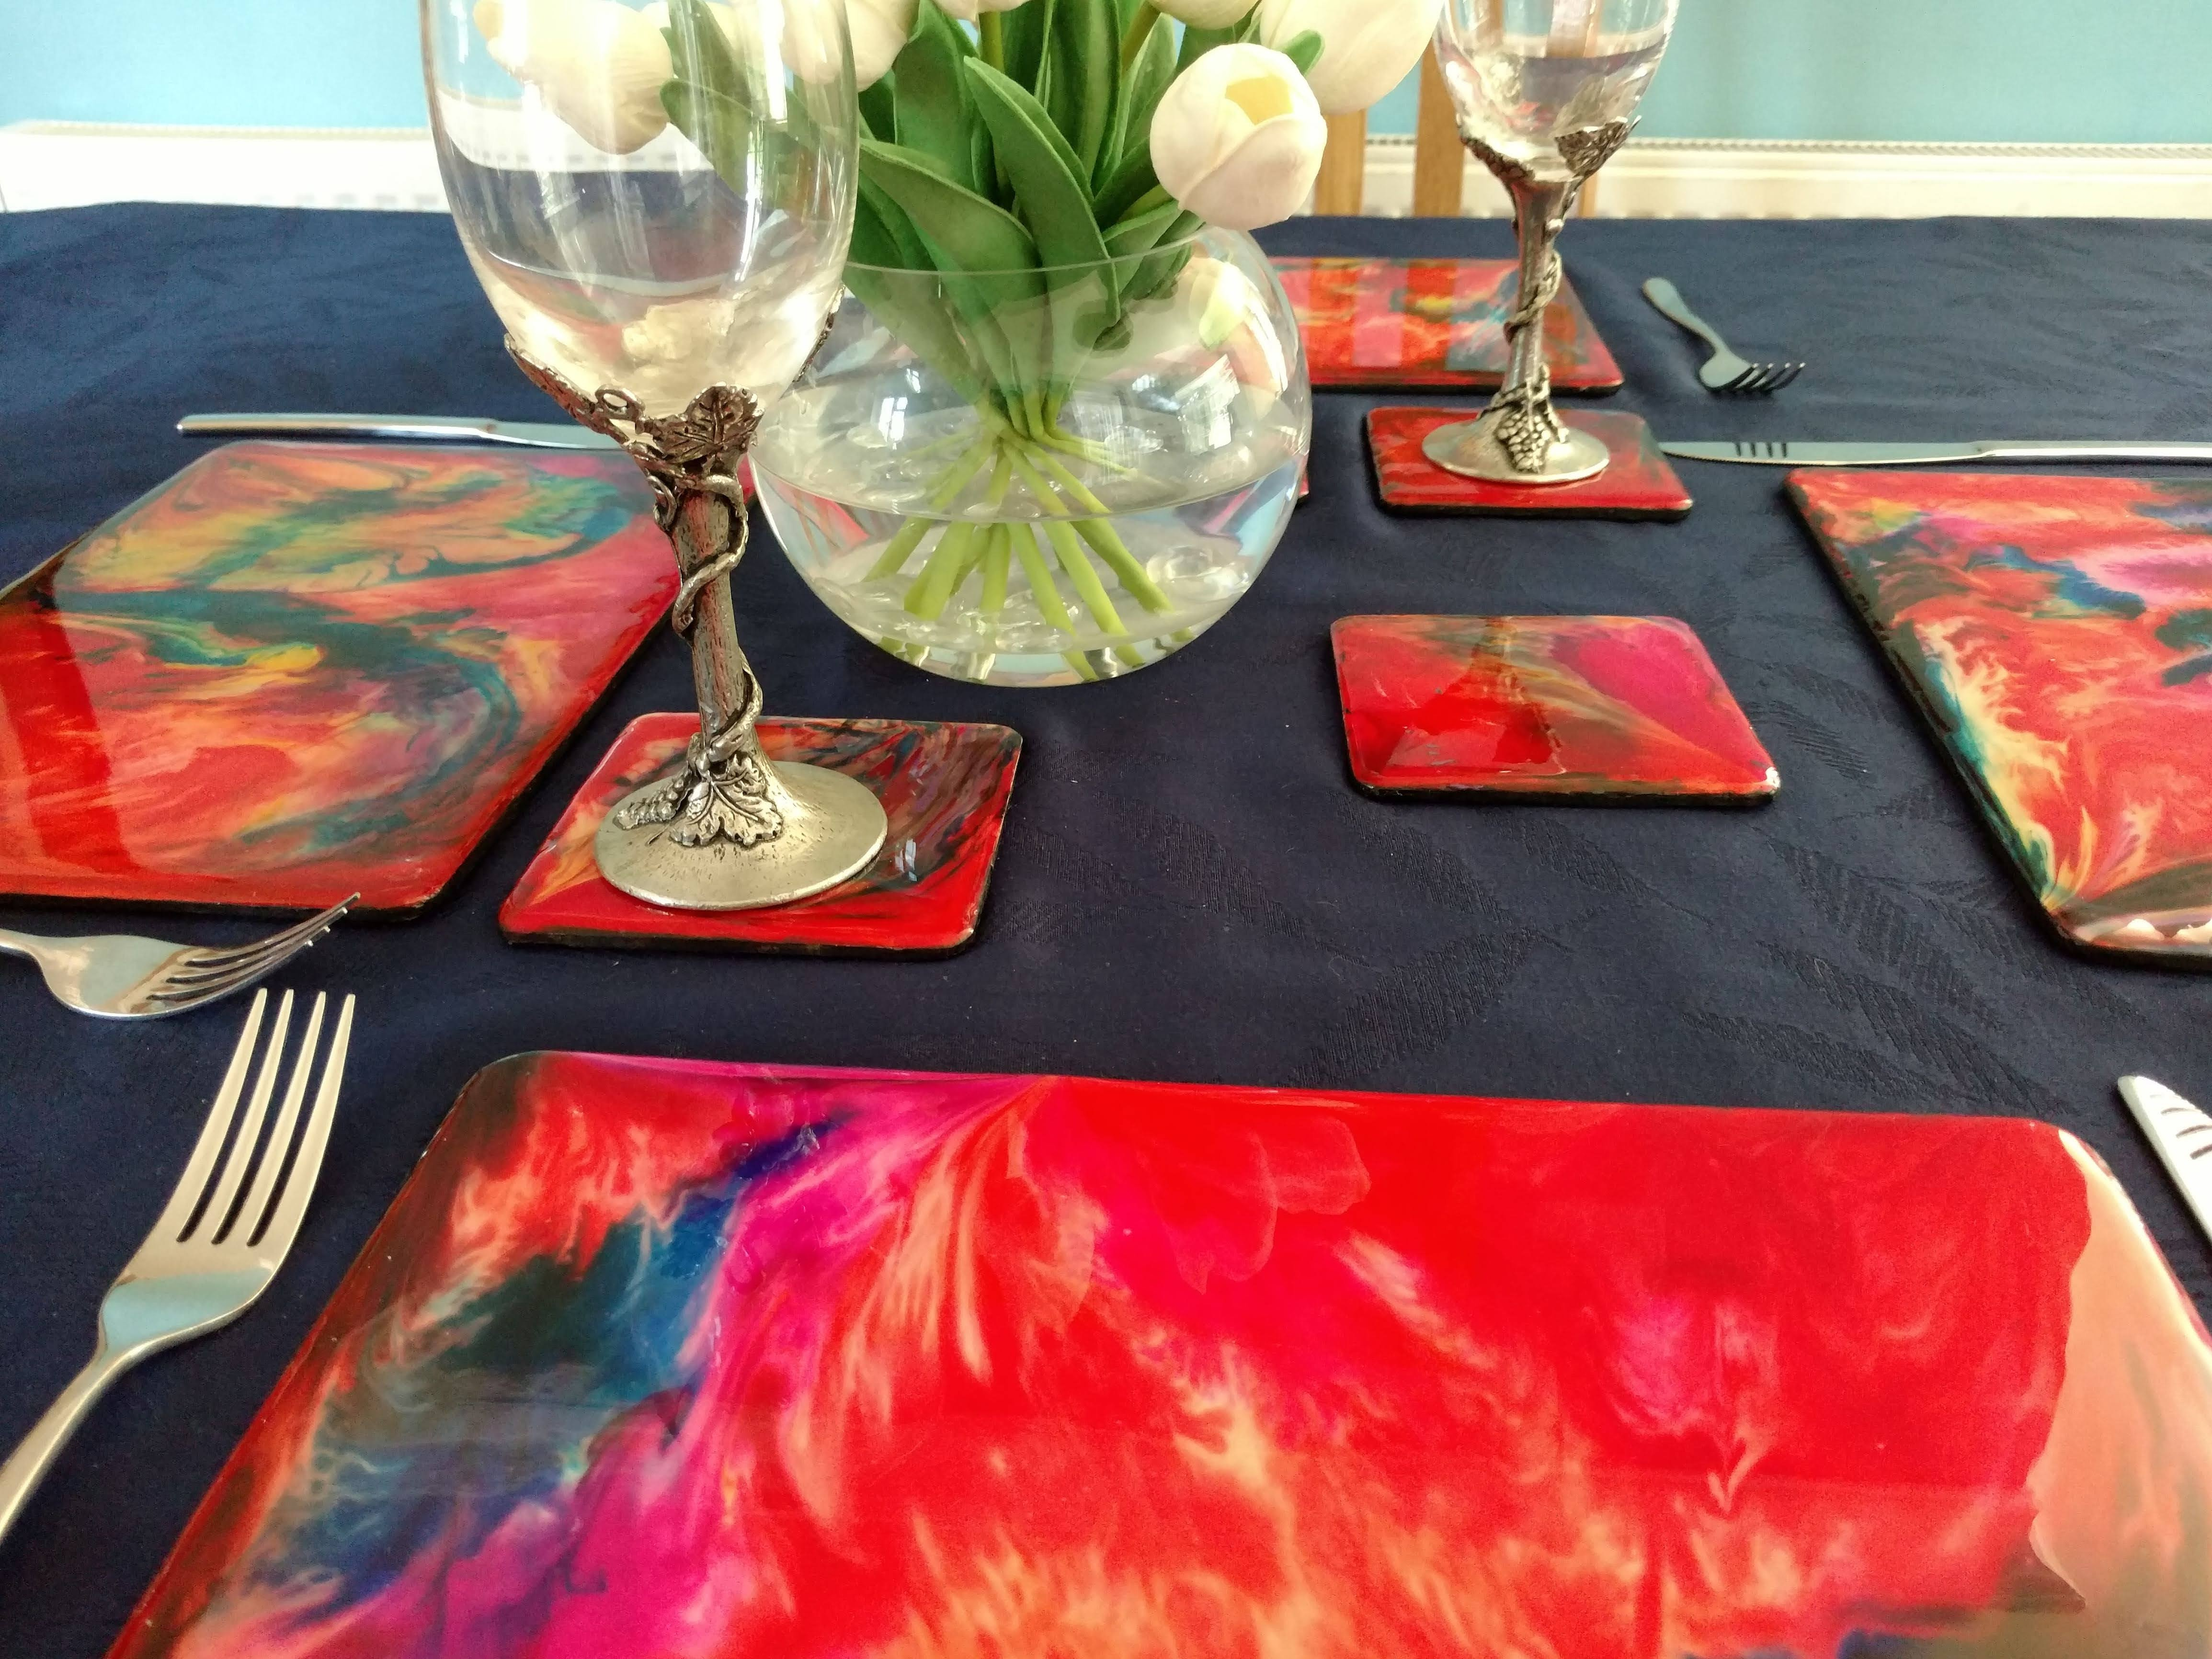 redplacemats and coaster set